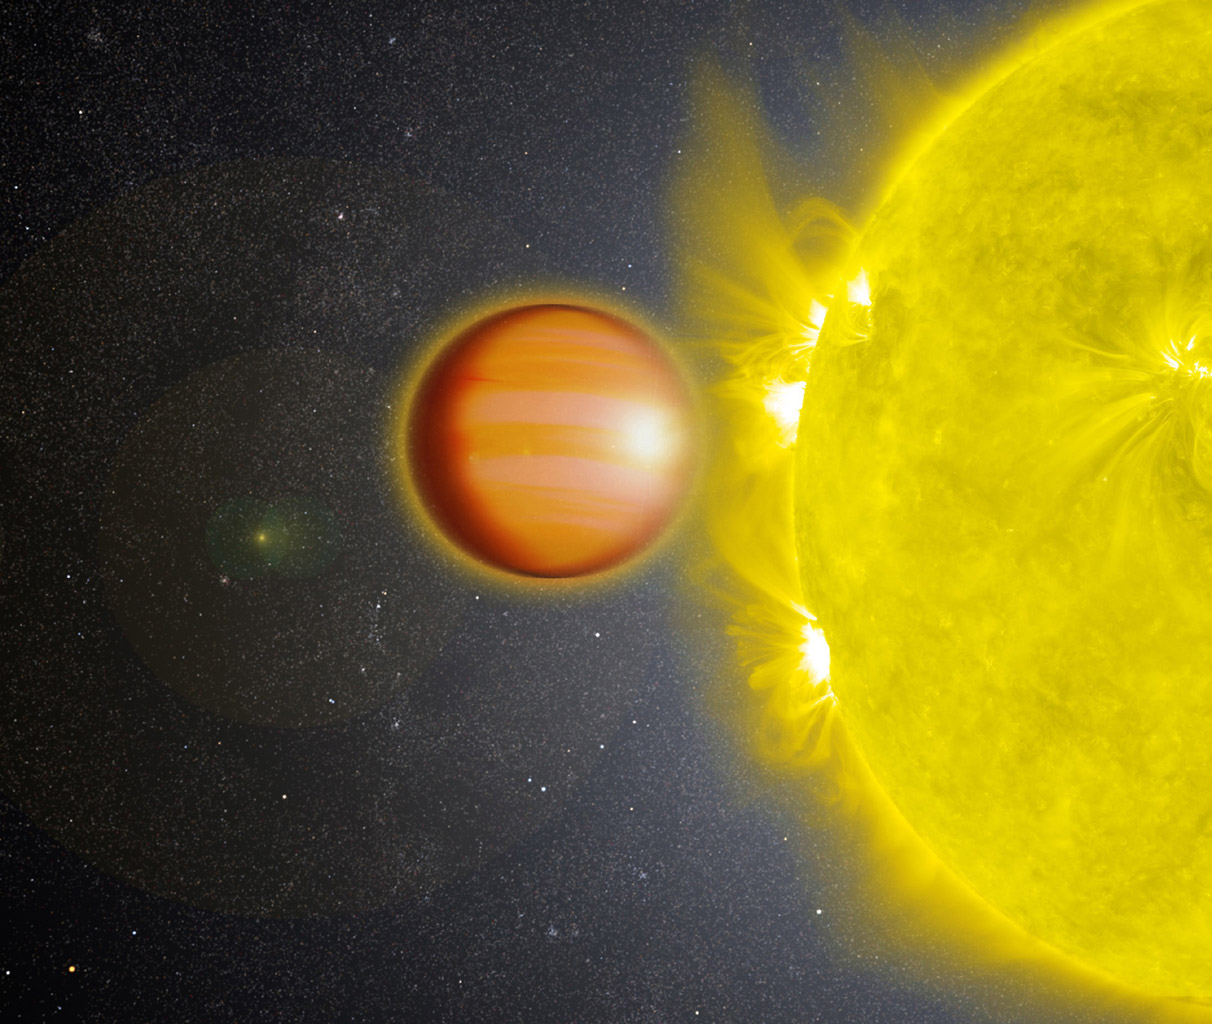 A NASA-led team of scientists determined that WASP-18b, a 'hot Jupiter' located 325 light-years from Earth, has a stratosphere that's loaded with carbon monoxide, but has no signs of water.